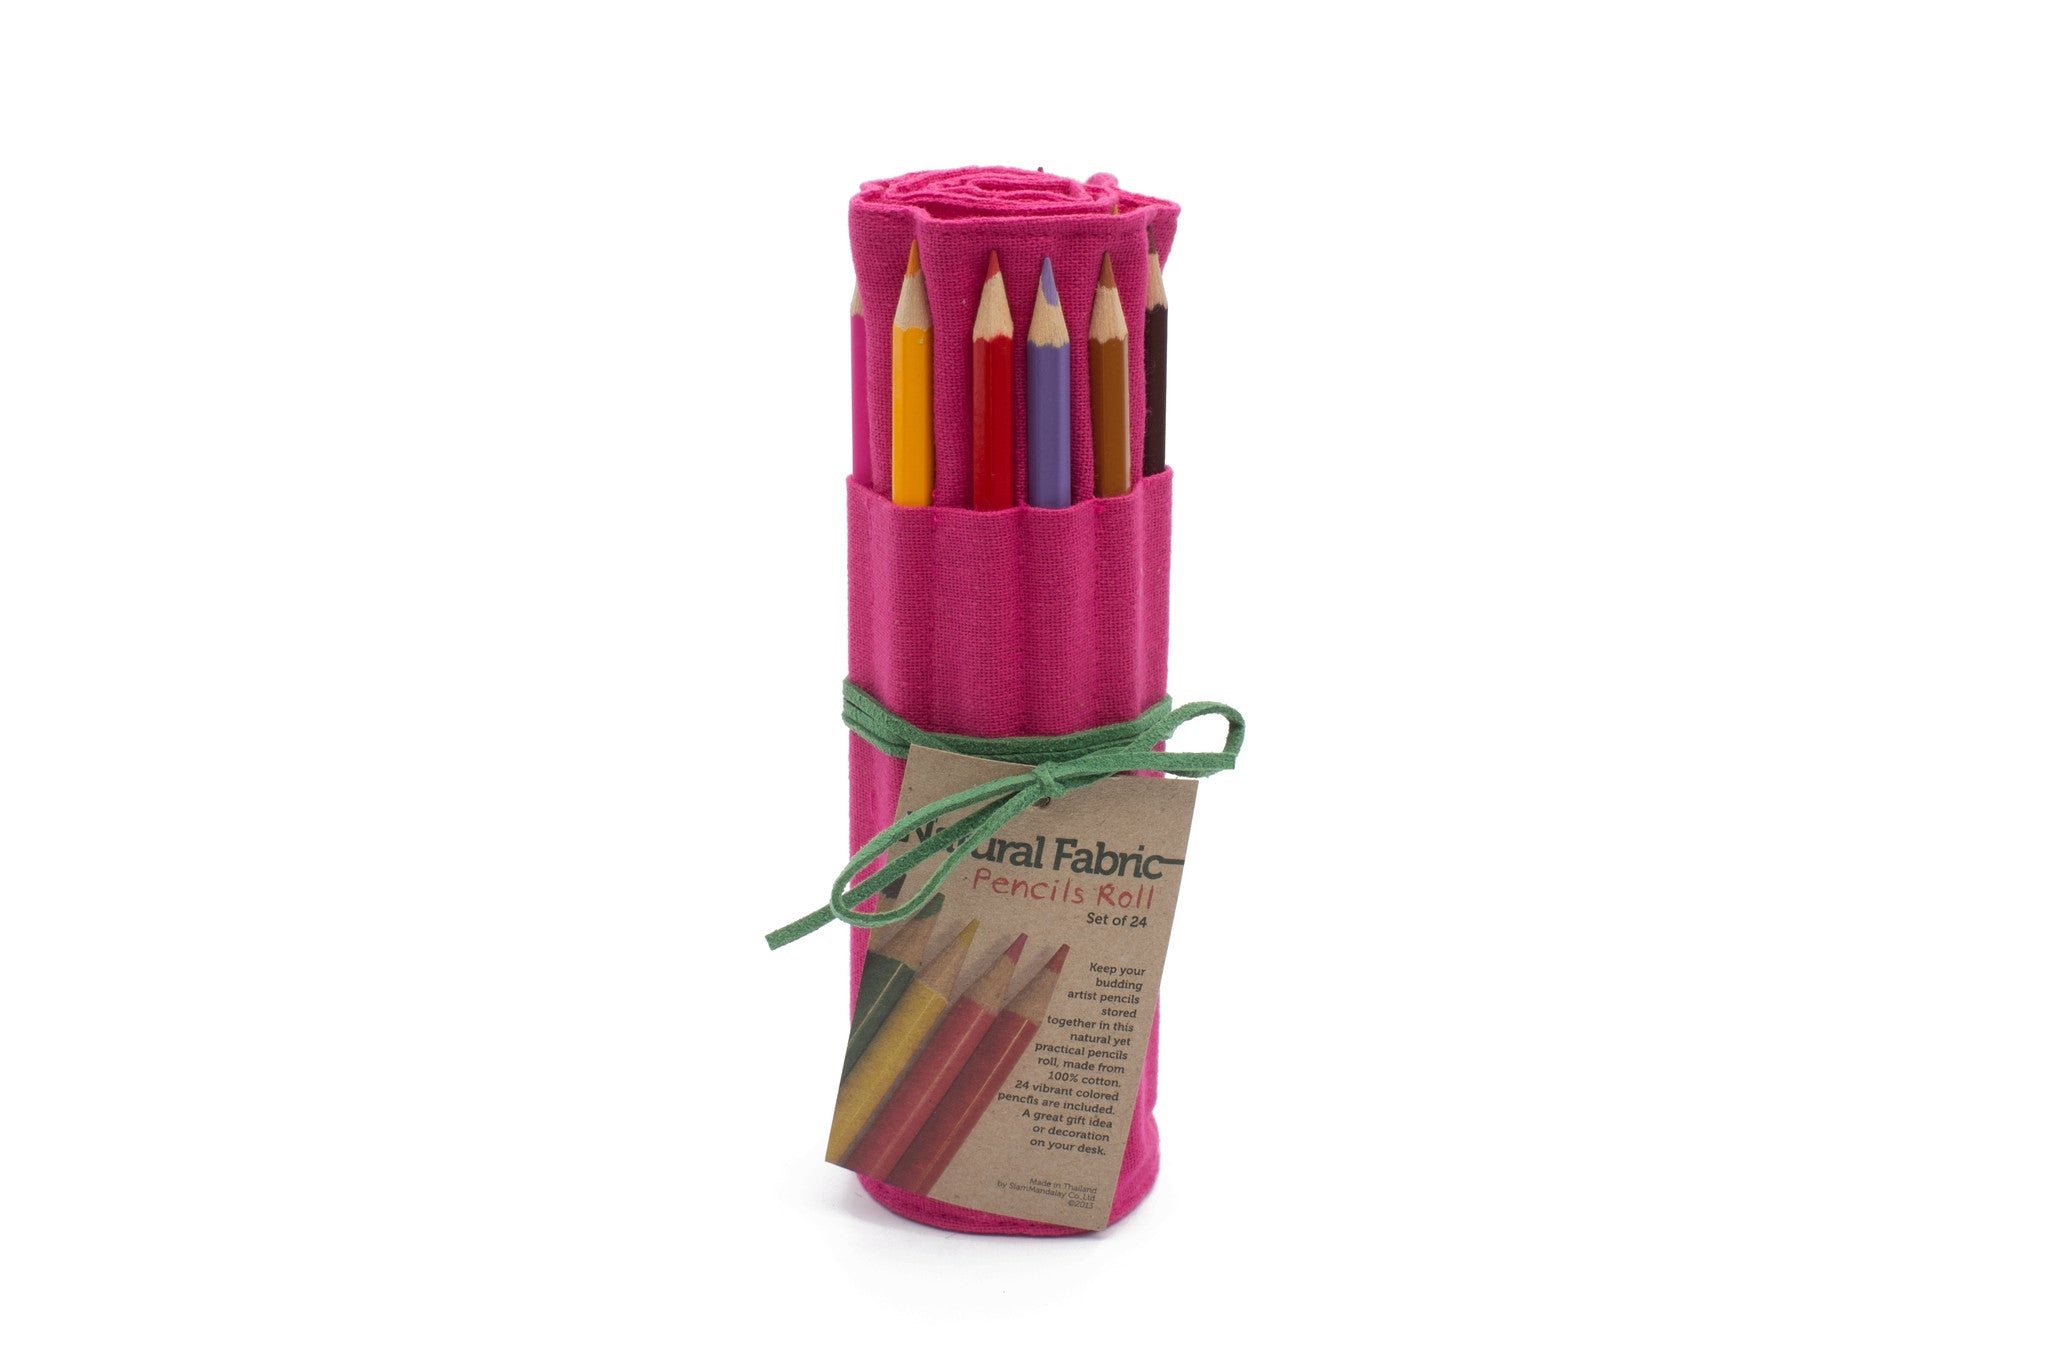 24 Colored Pencil - Pink Fabric with Green Leather Cord